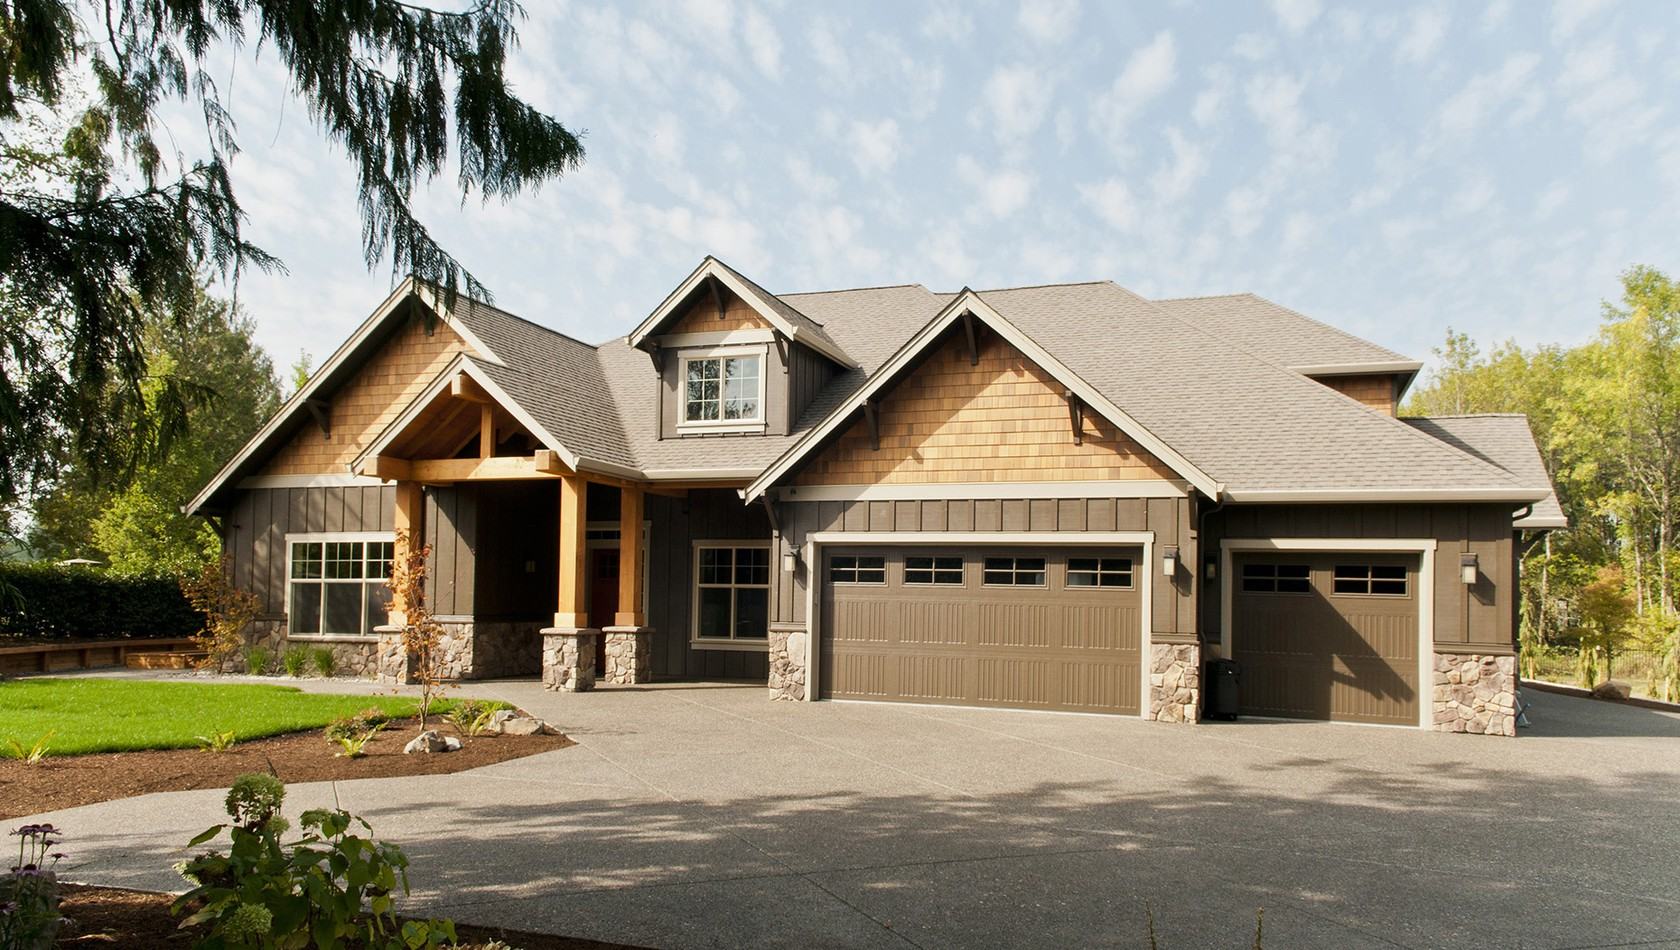 Main image for house plan 22157AA: The Ashby